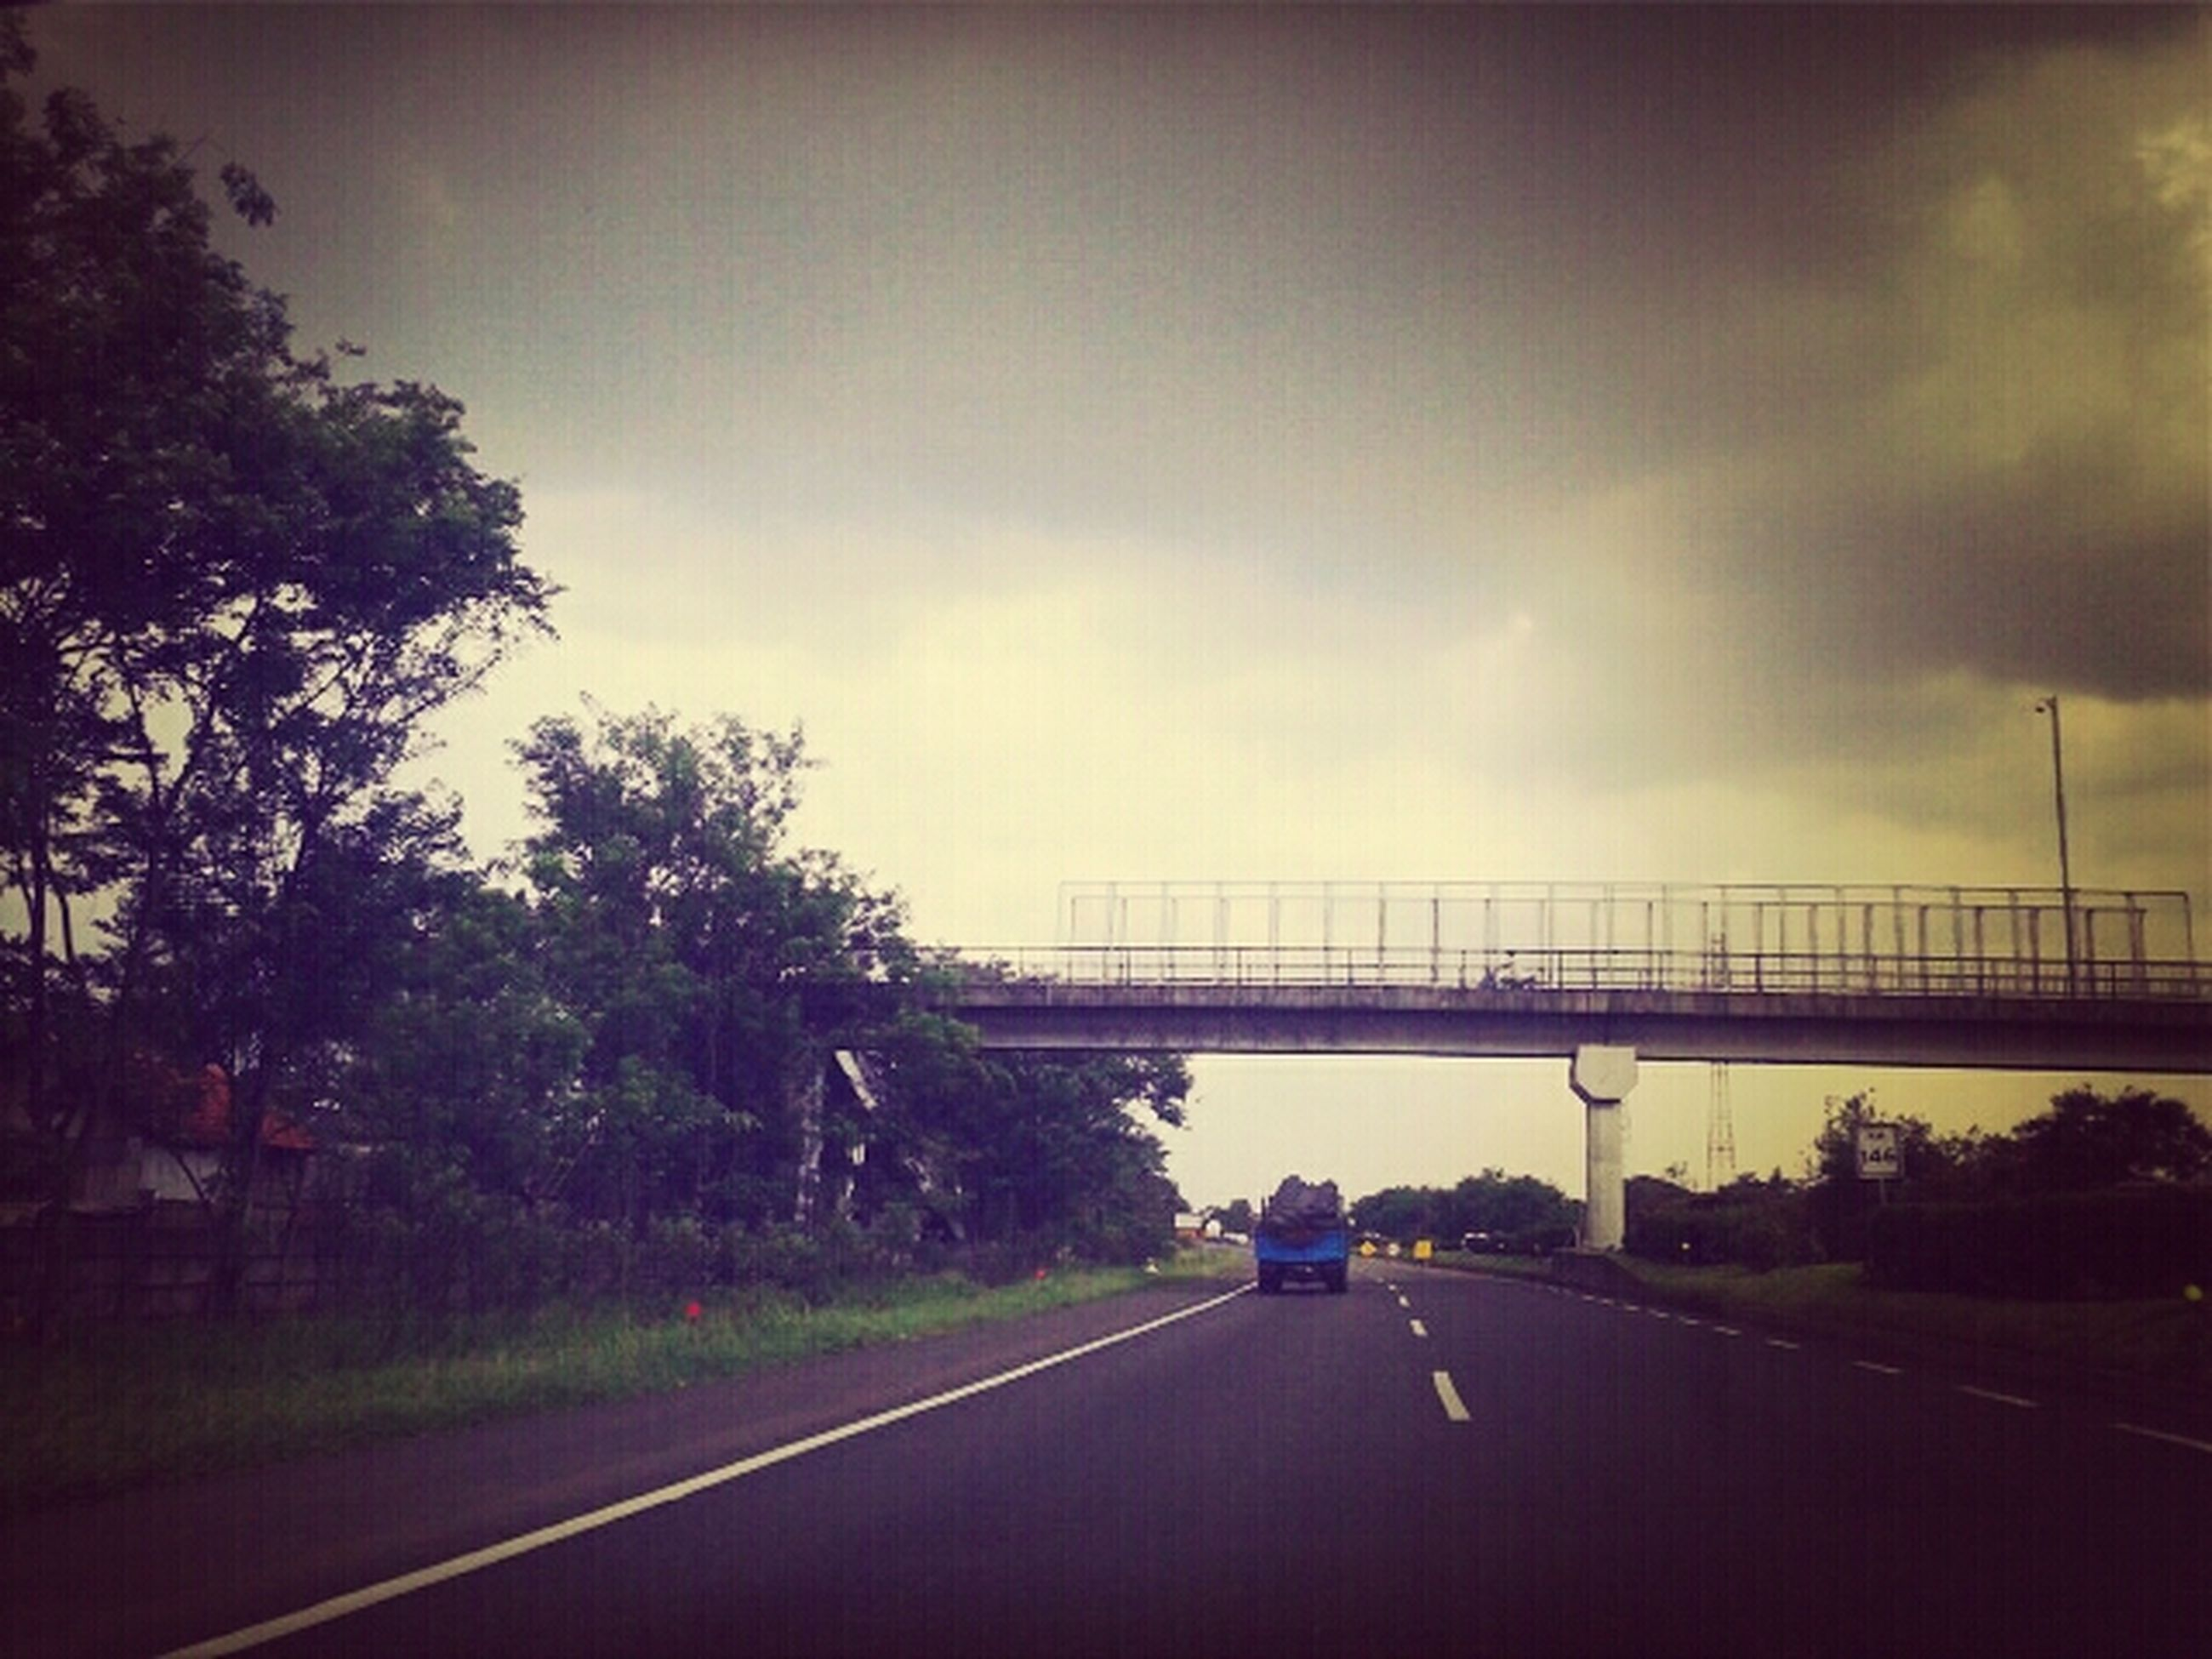 transportation, road, the way forward, car, road marking, sky, land vehicle, mode of transport, diminishing perspective, connection, tree, on the move, cloud - sky, vanishing point, bridge - man made structure, street, highway, cloudy, street light, travel